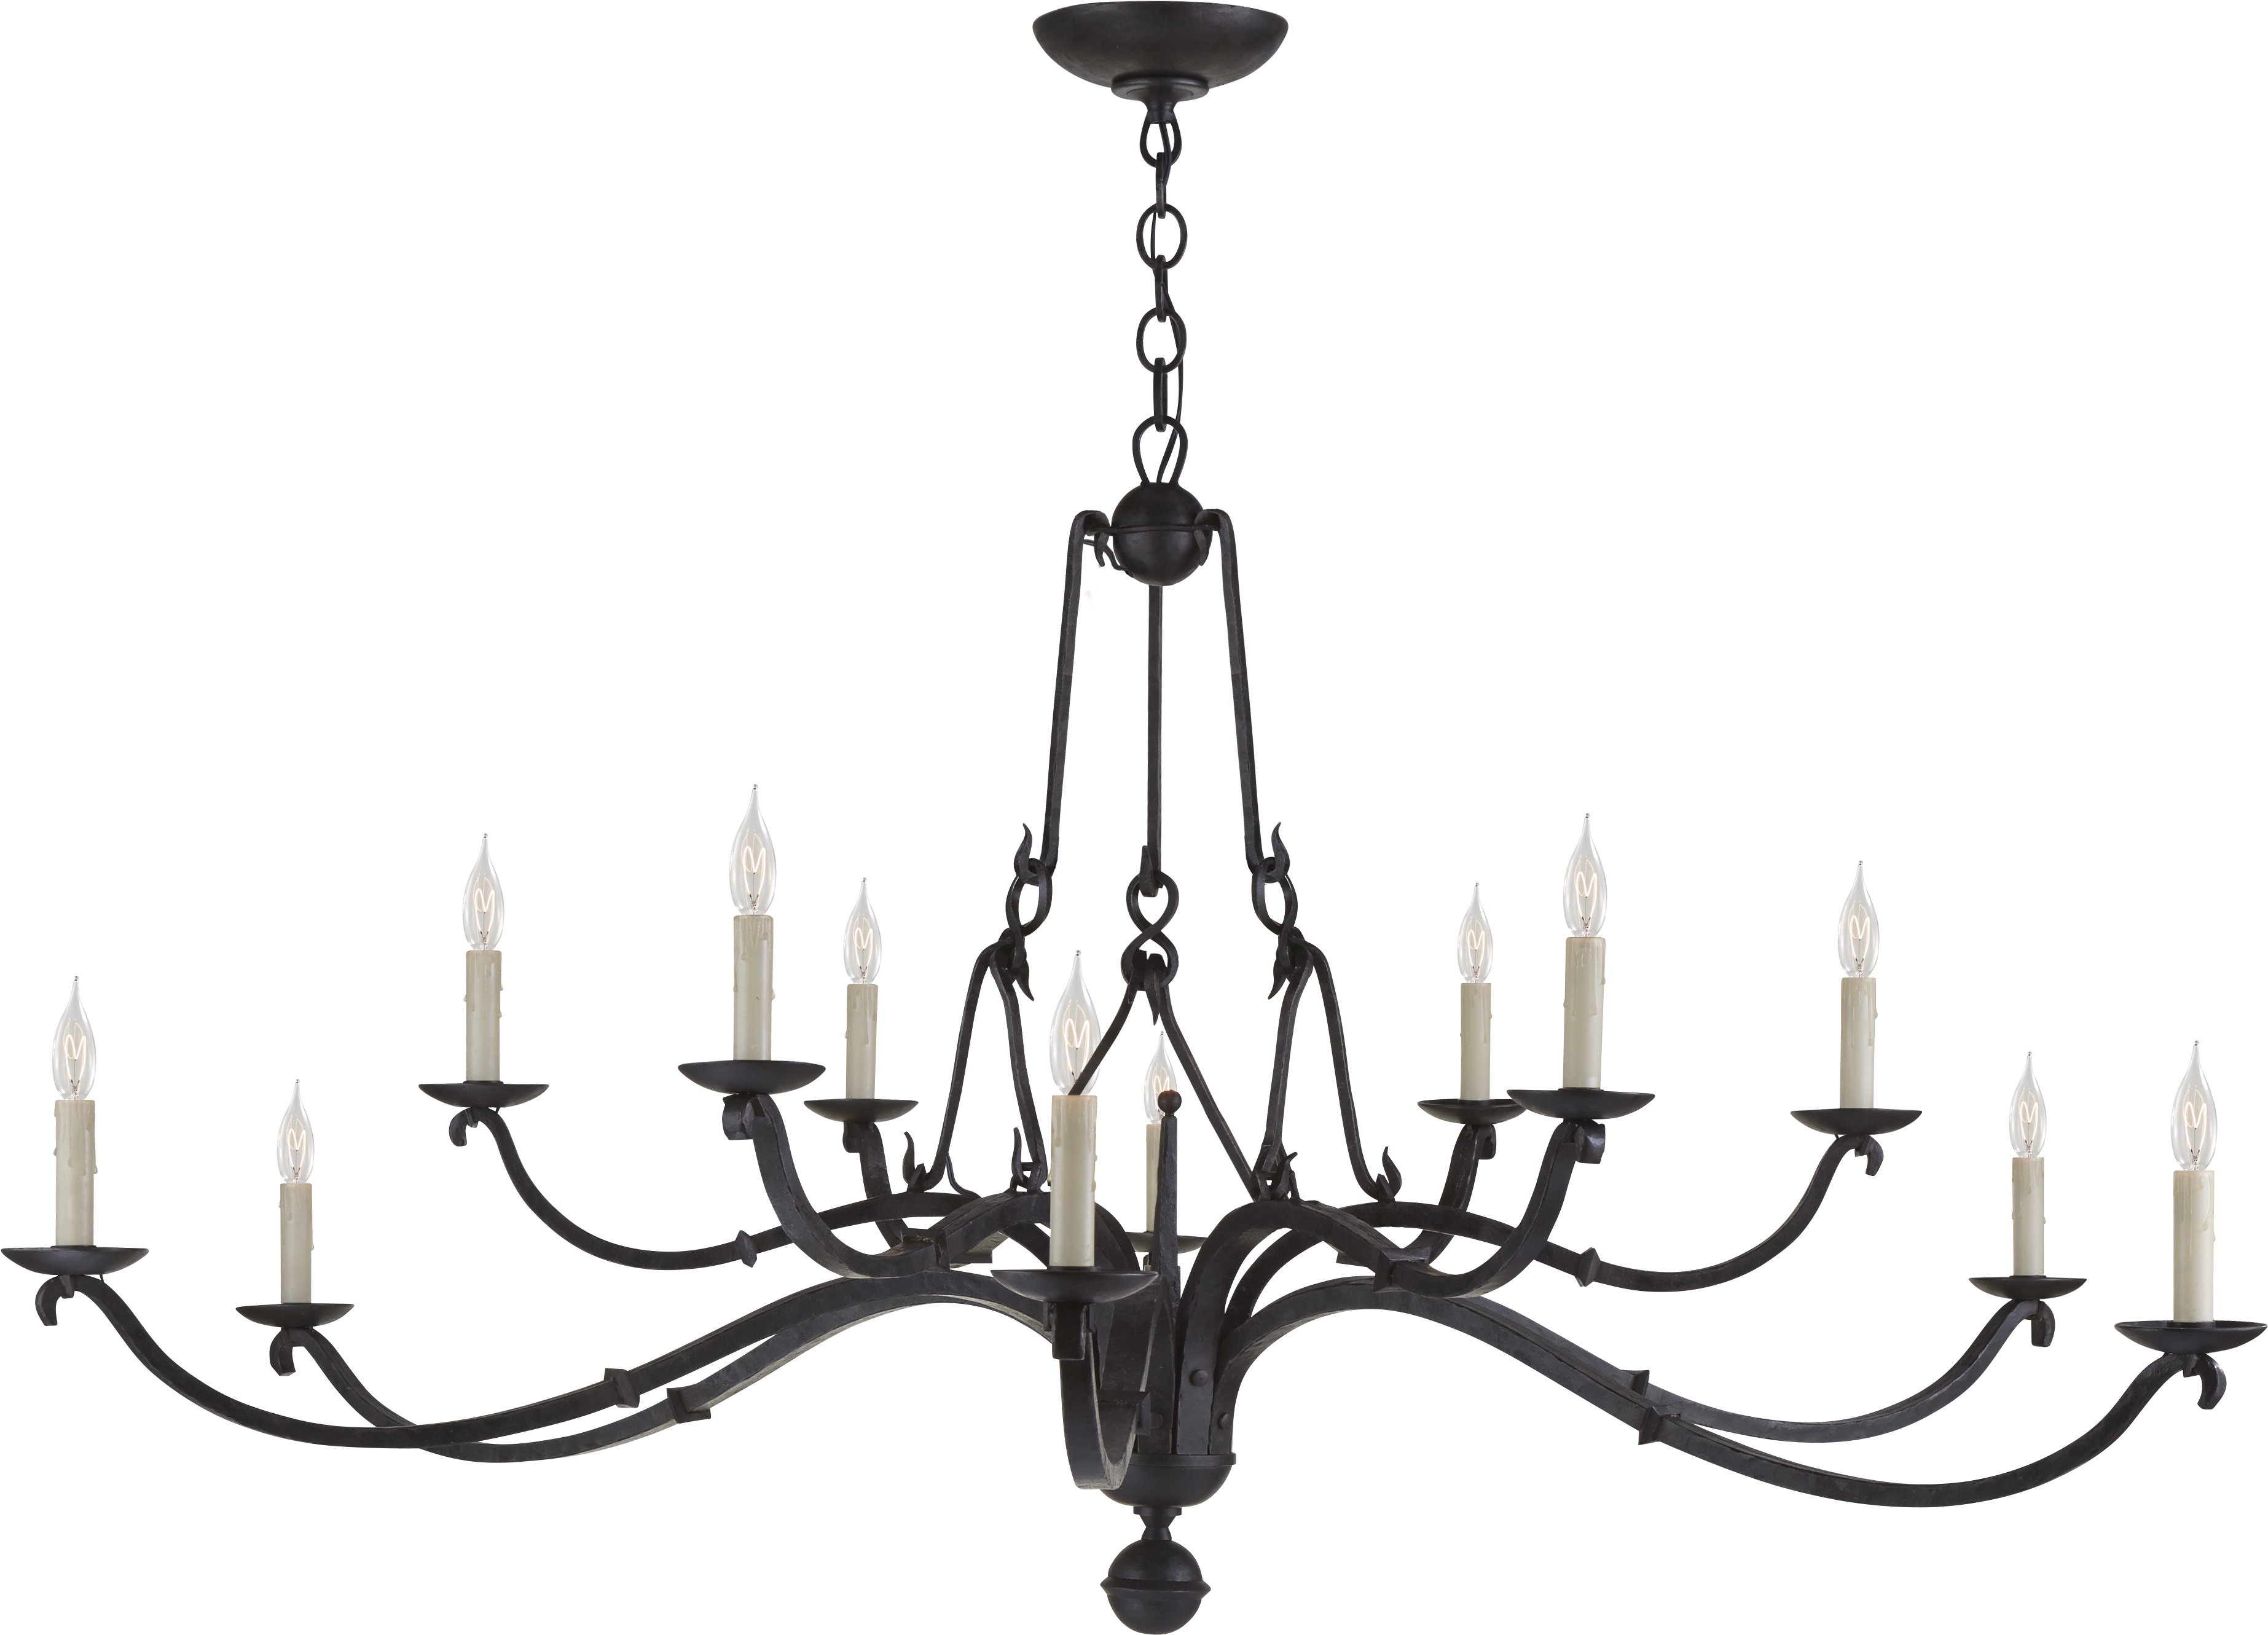 Large Bronze Chandelier Within Most Up To Date Large Chandelier Candle – Closdurocnoir (View 10 of 20)